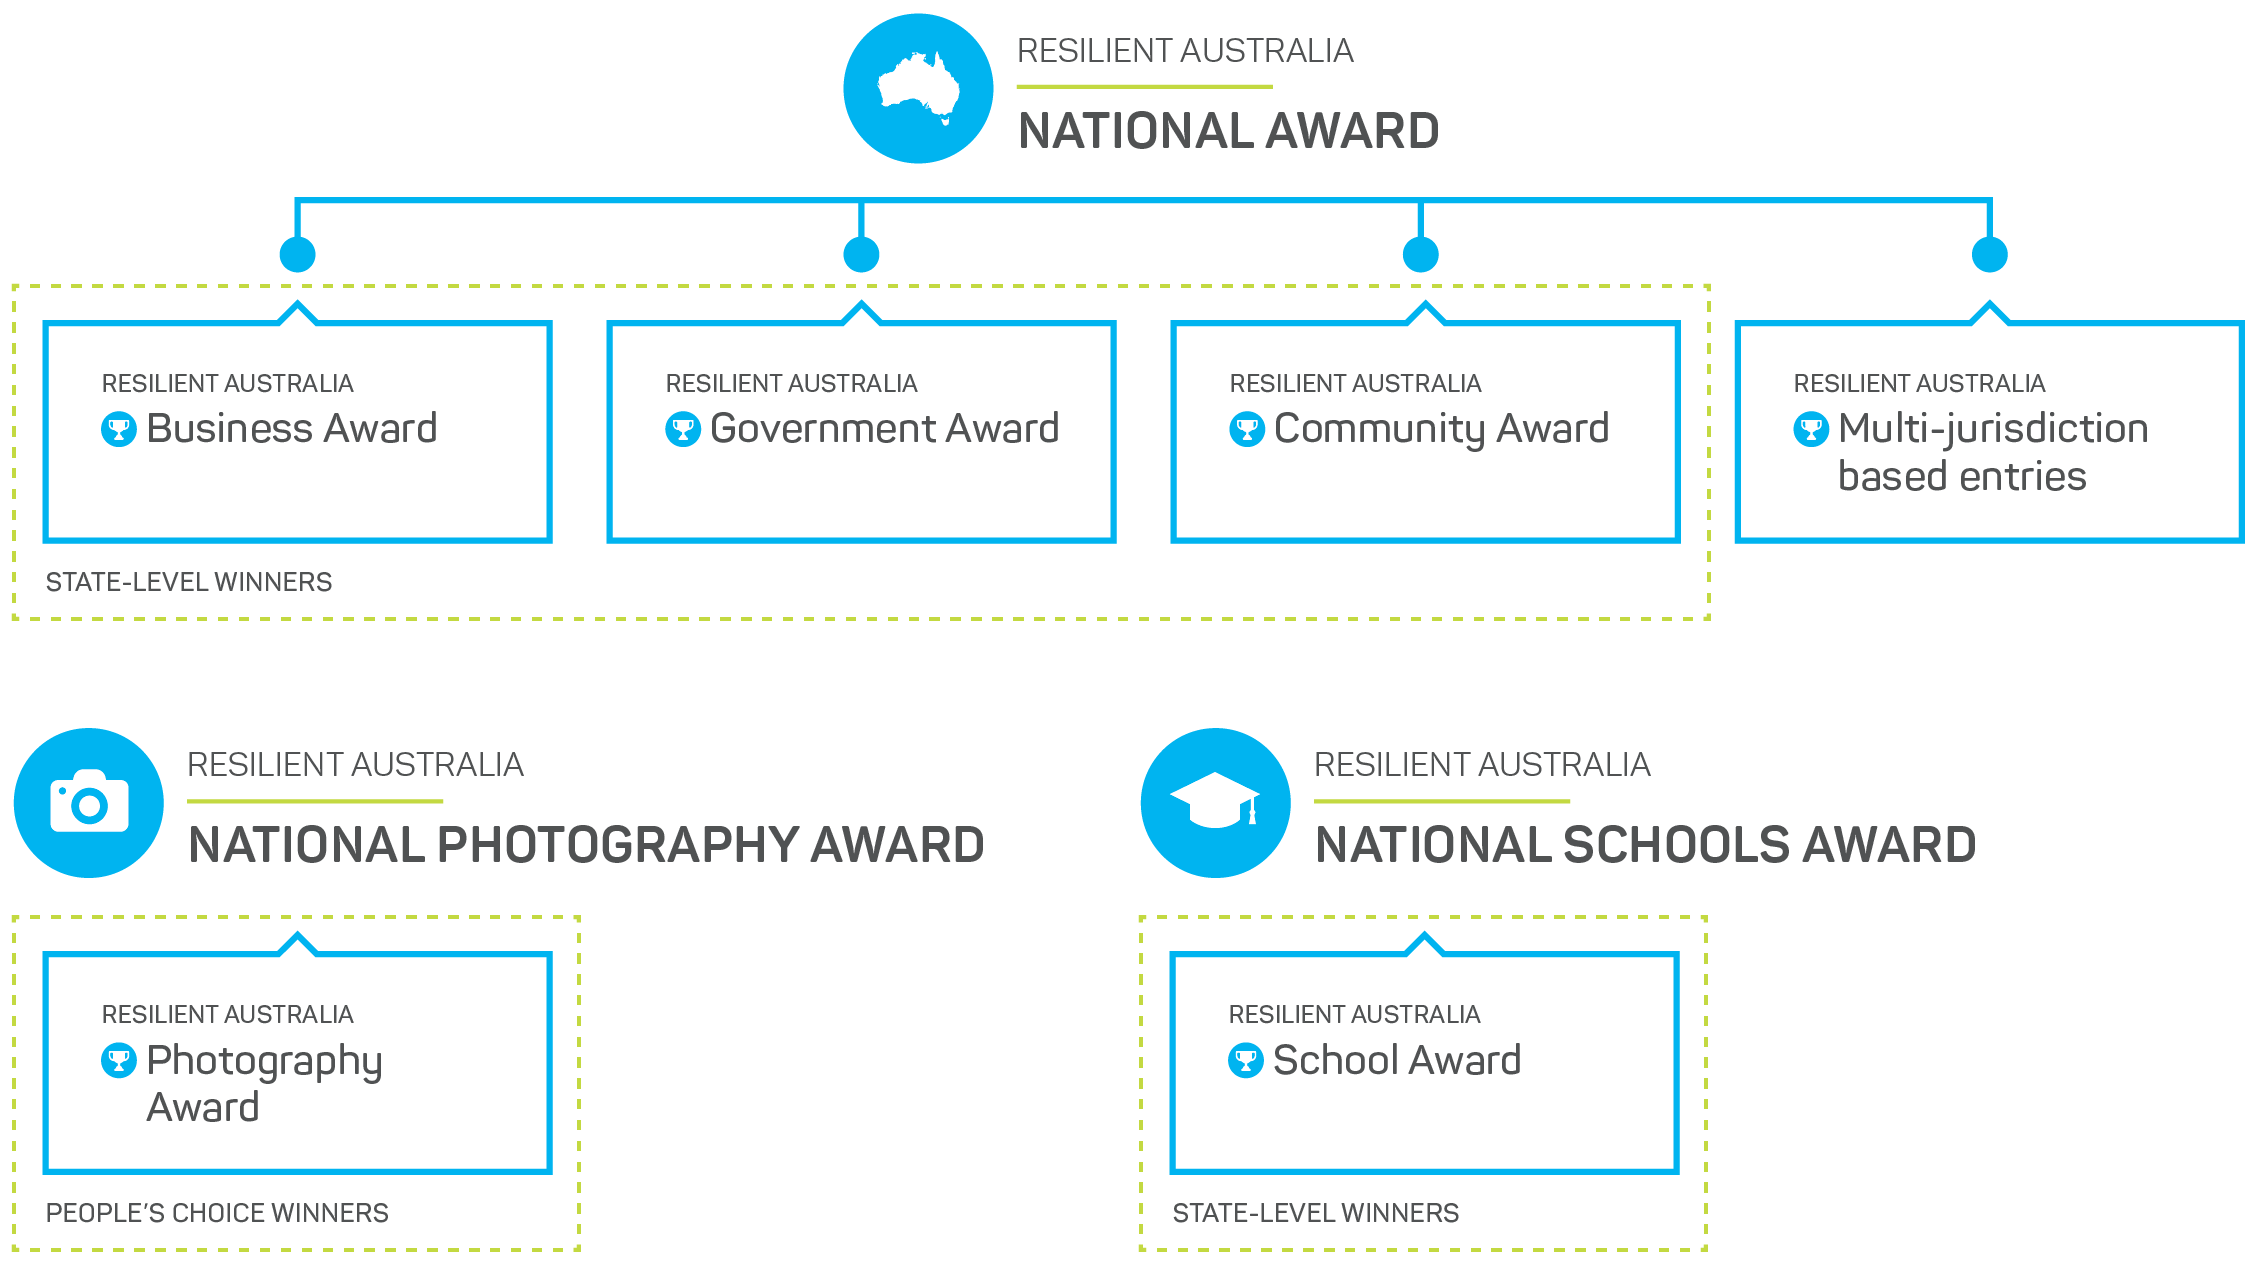 Resilient Australia Awards categories diagram